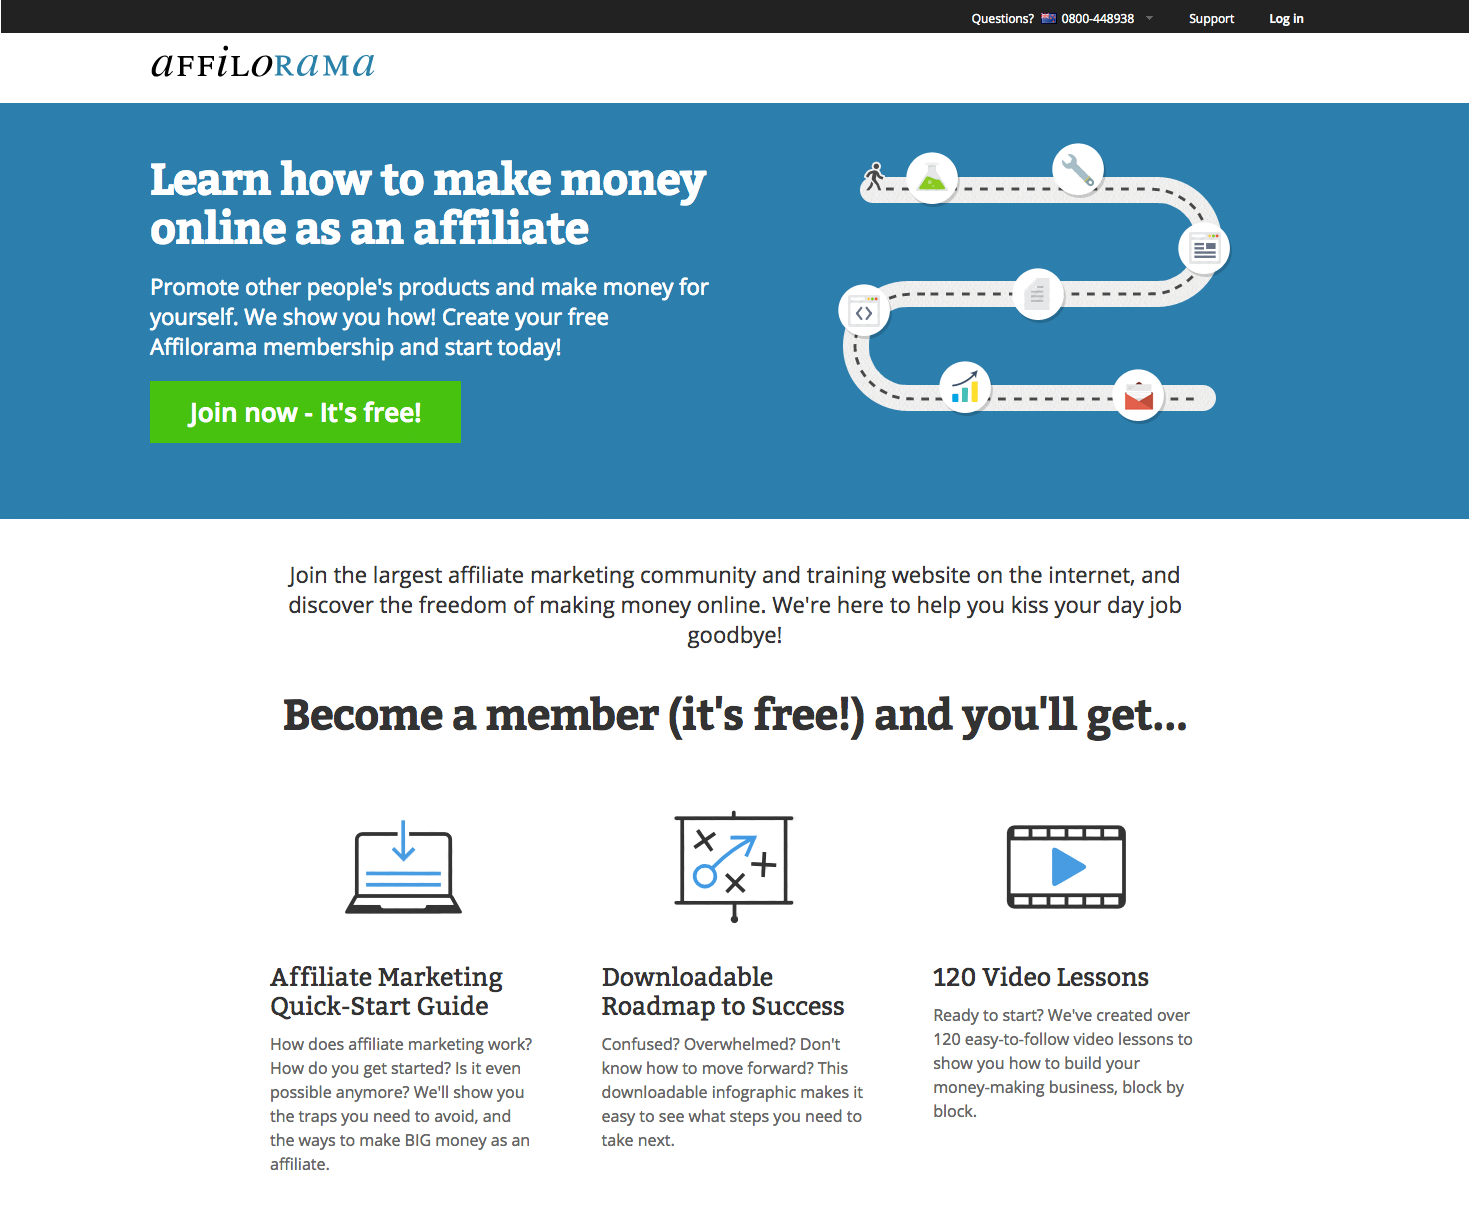 affilorama-learn-affiliate-marketing